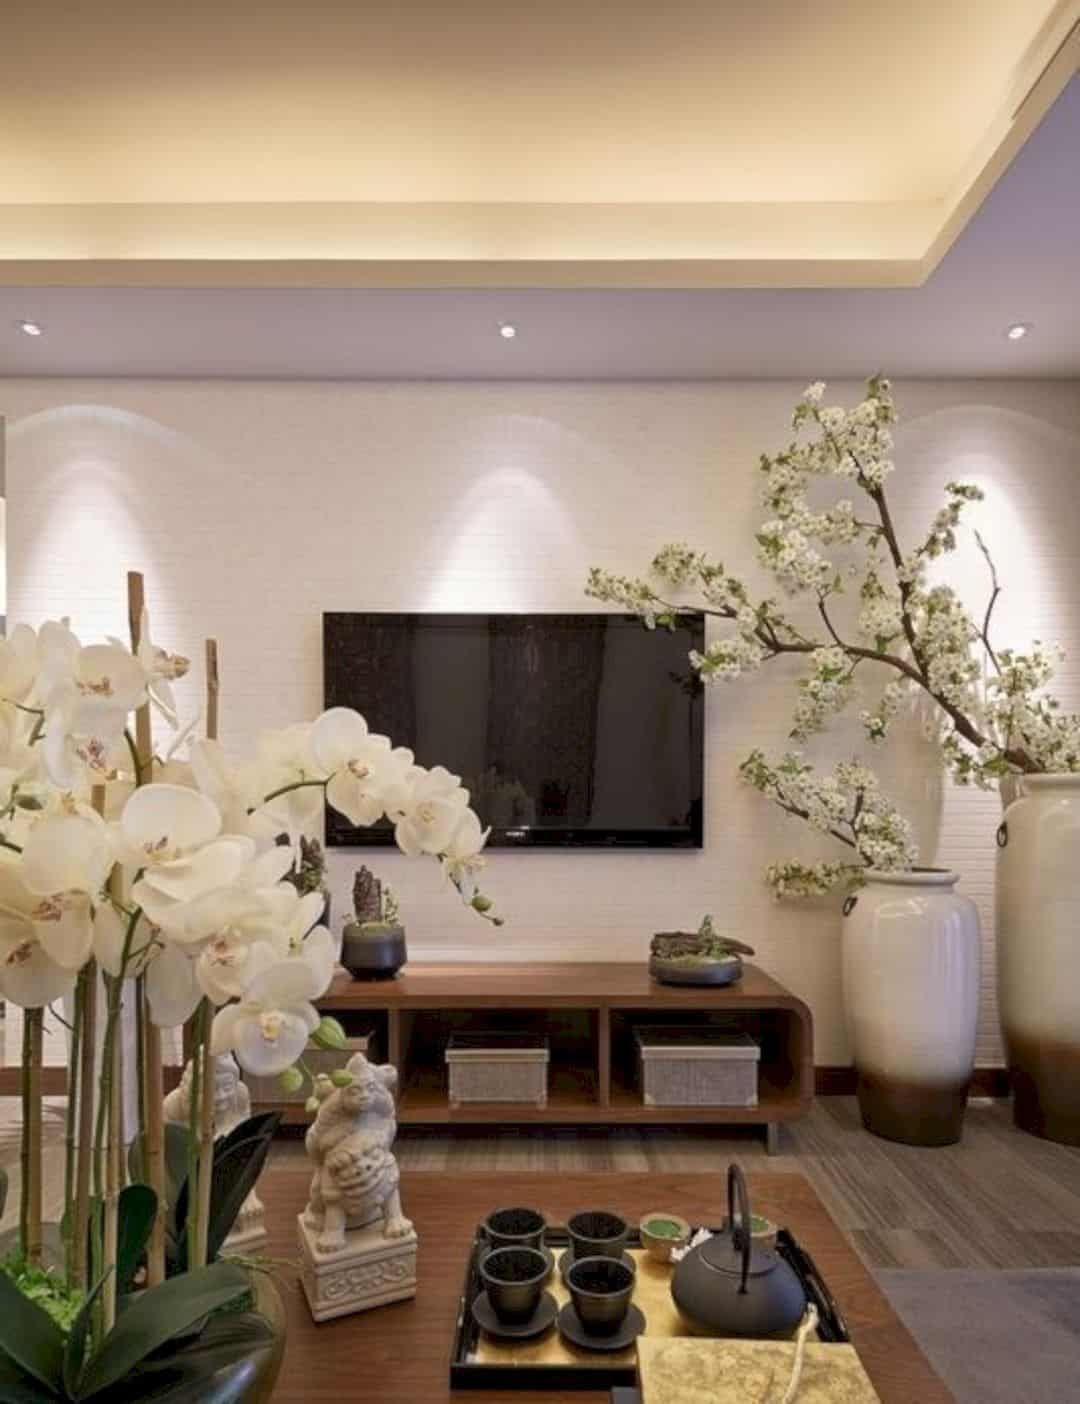 15 Amazing Asian Home Decoration Ideas You Should Consider To Have